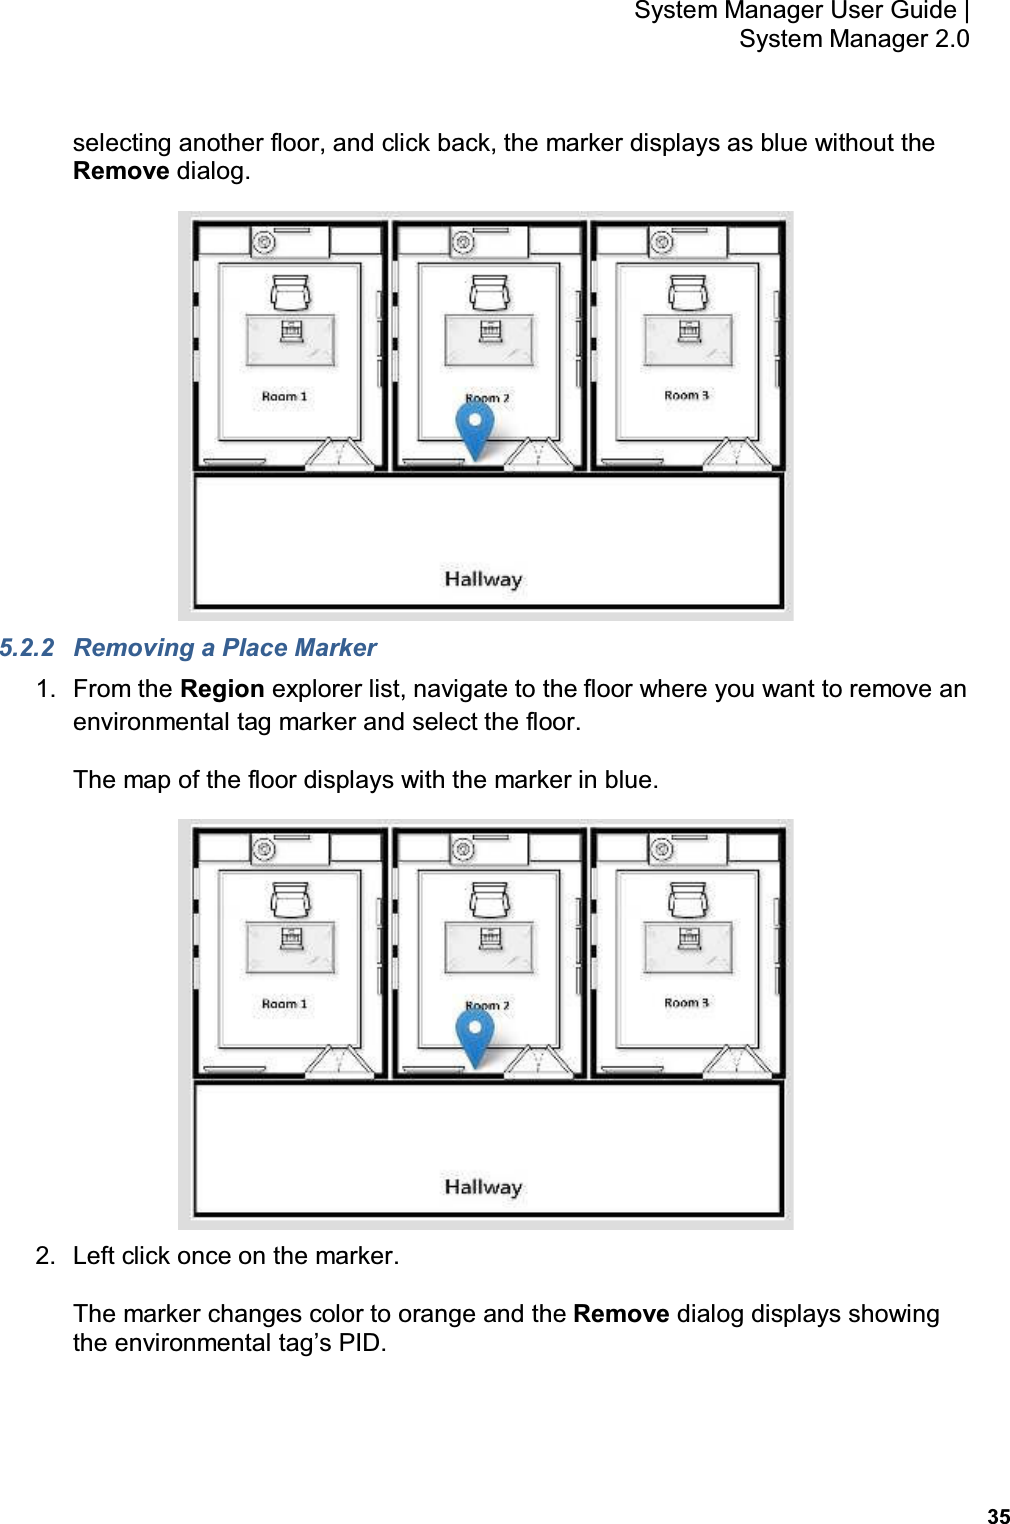 35 System Manager User Guide    System Manager 2.0 selecting another floor, and click back, the marker displays as blue without the Remove dialog.  5.2.2  Removing a Place Marker 1.  From the Region explorer list, navigate to the floor where you want to remove an environmental tag marker and select the floor. The map of the floor displays with the marker in blue.  2.  Left click once on the marker. The marker changes color to orange and the Remove dialog displays showing the environmental tag's PID.